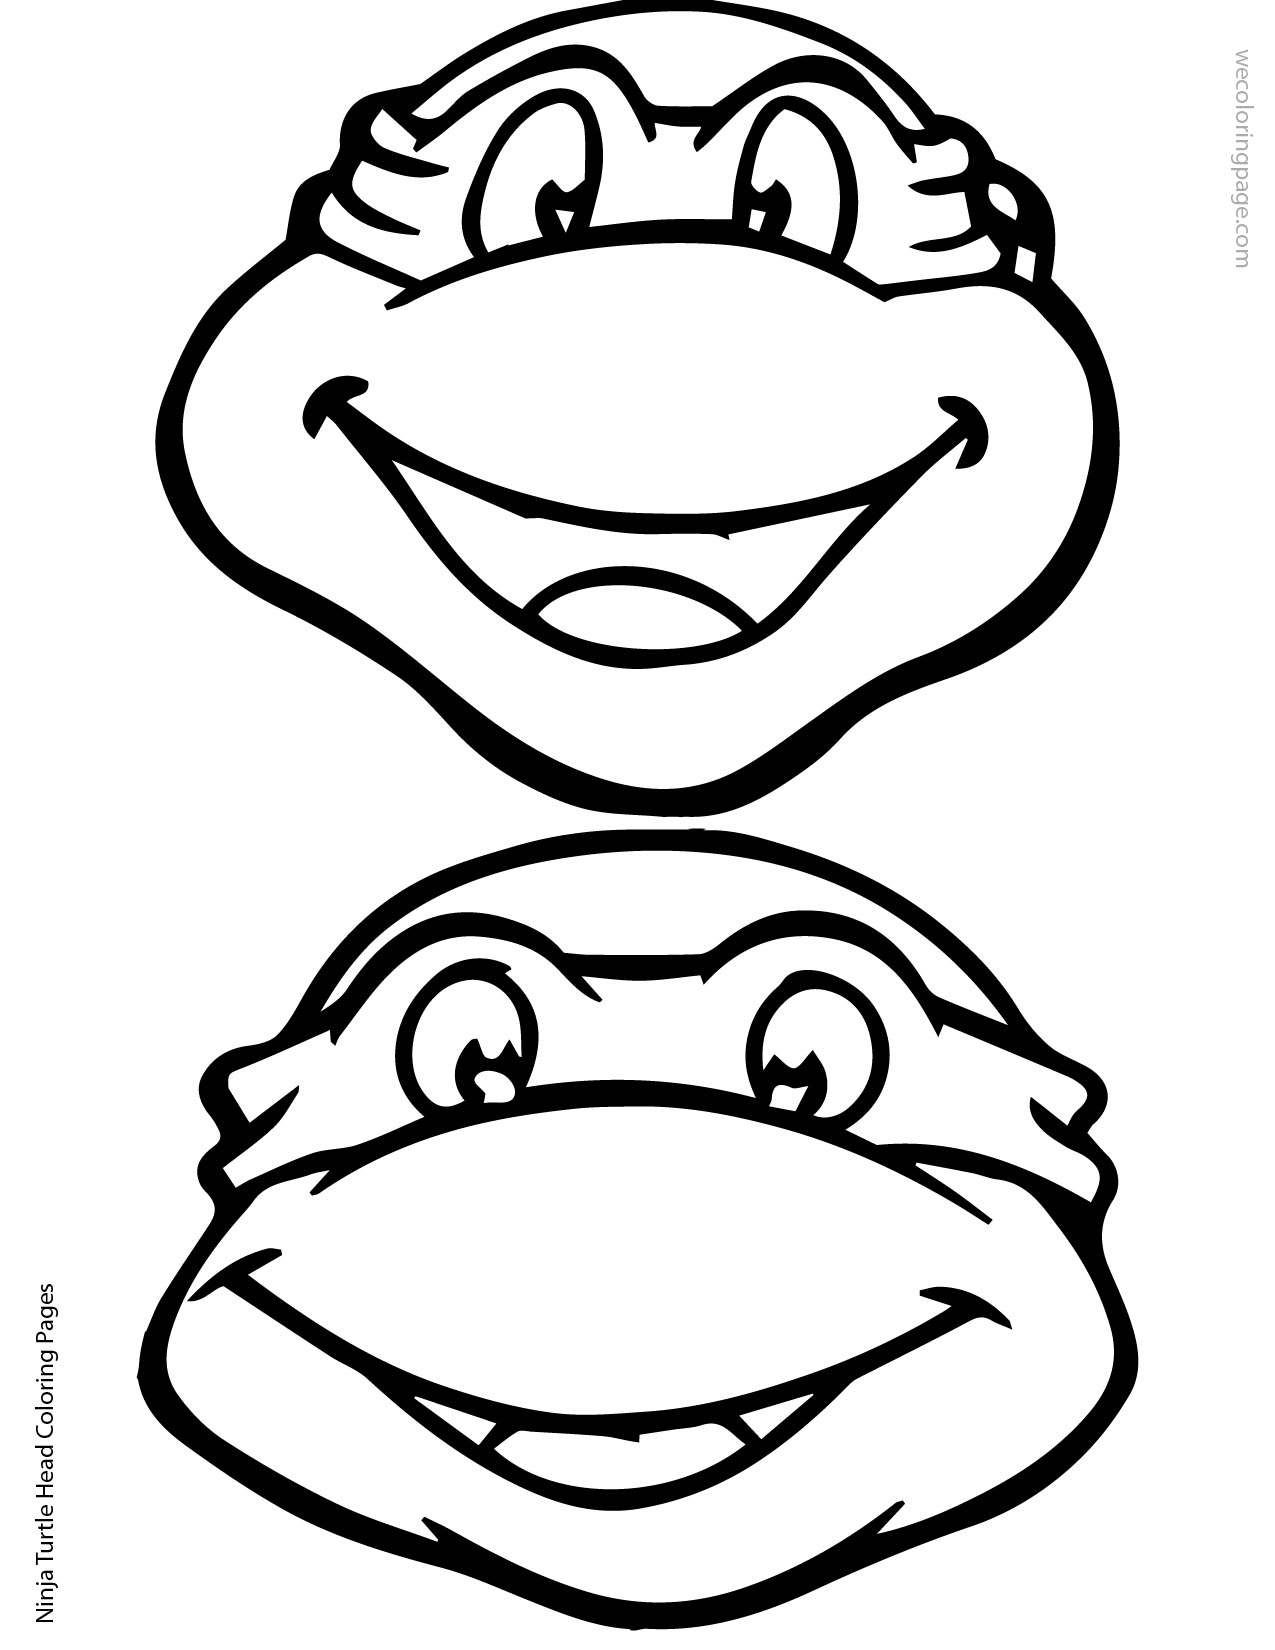 Ninja Turtles clipart black and white Head ClipArt Coloring 02 Turtle